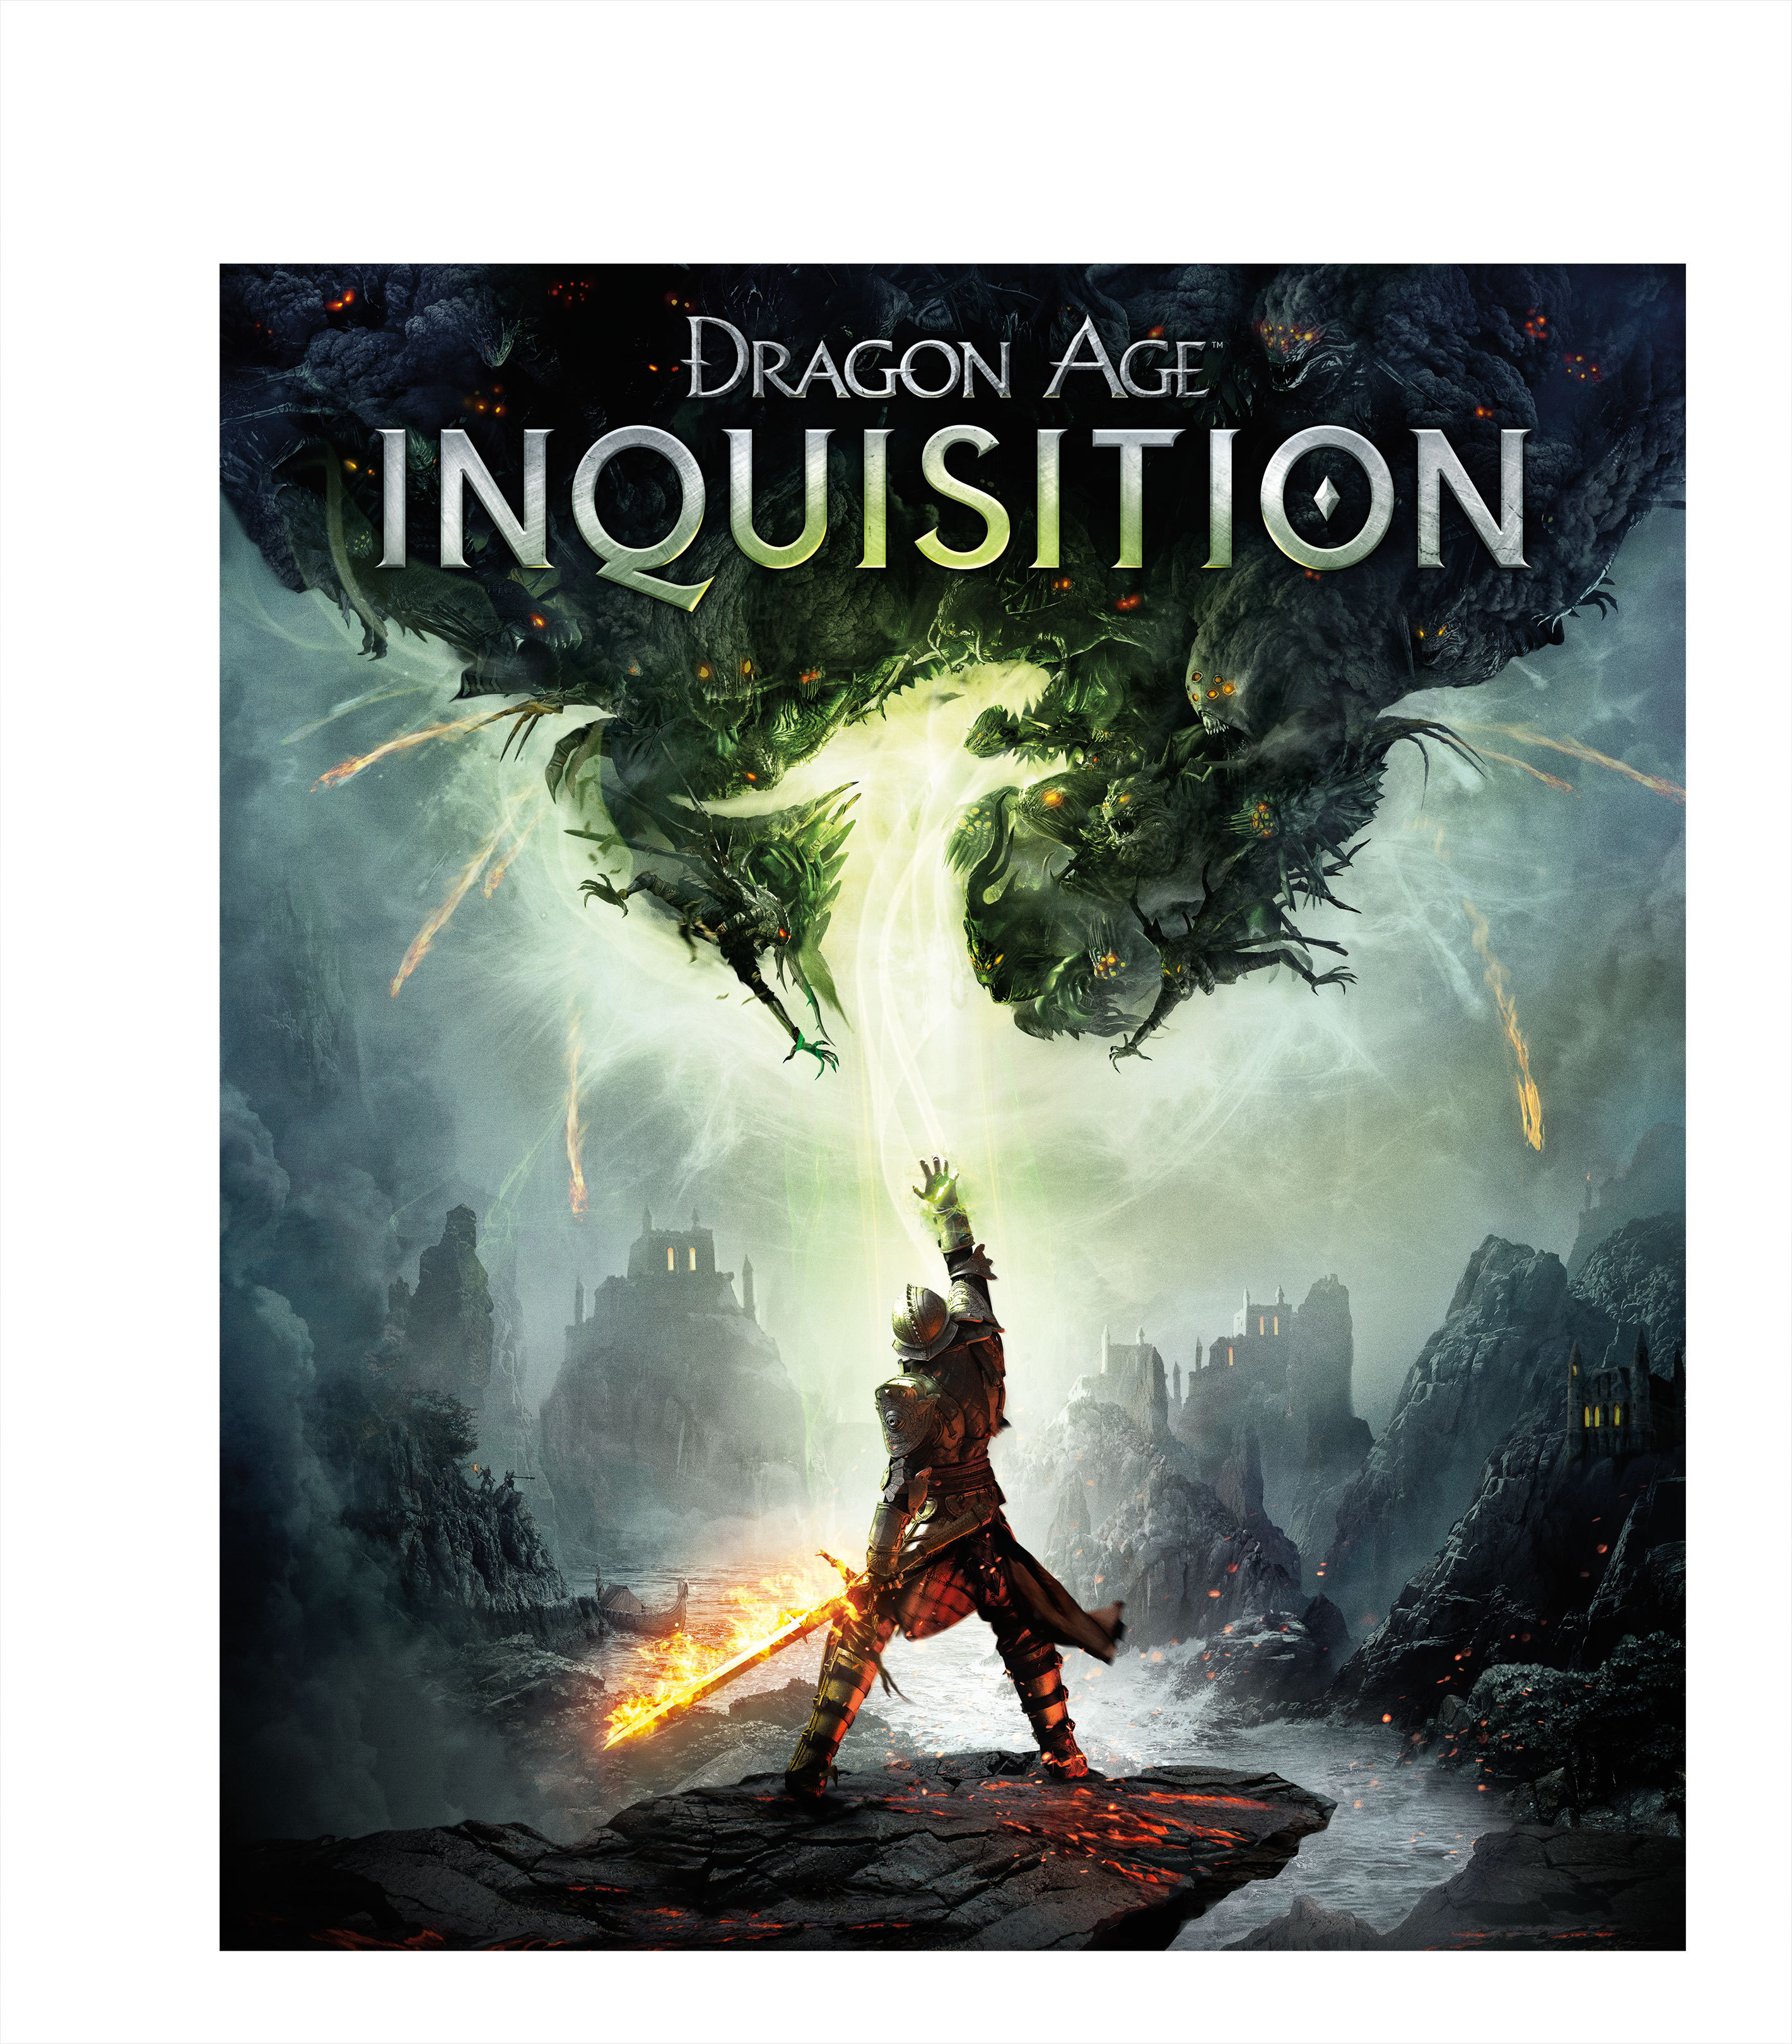 Dragon Age: Inquisition Key Art (Graphic: Business Wire)